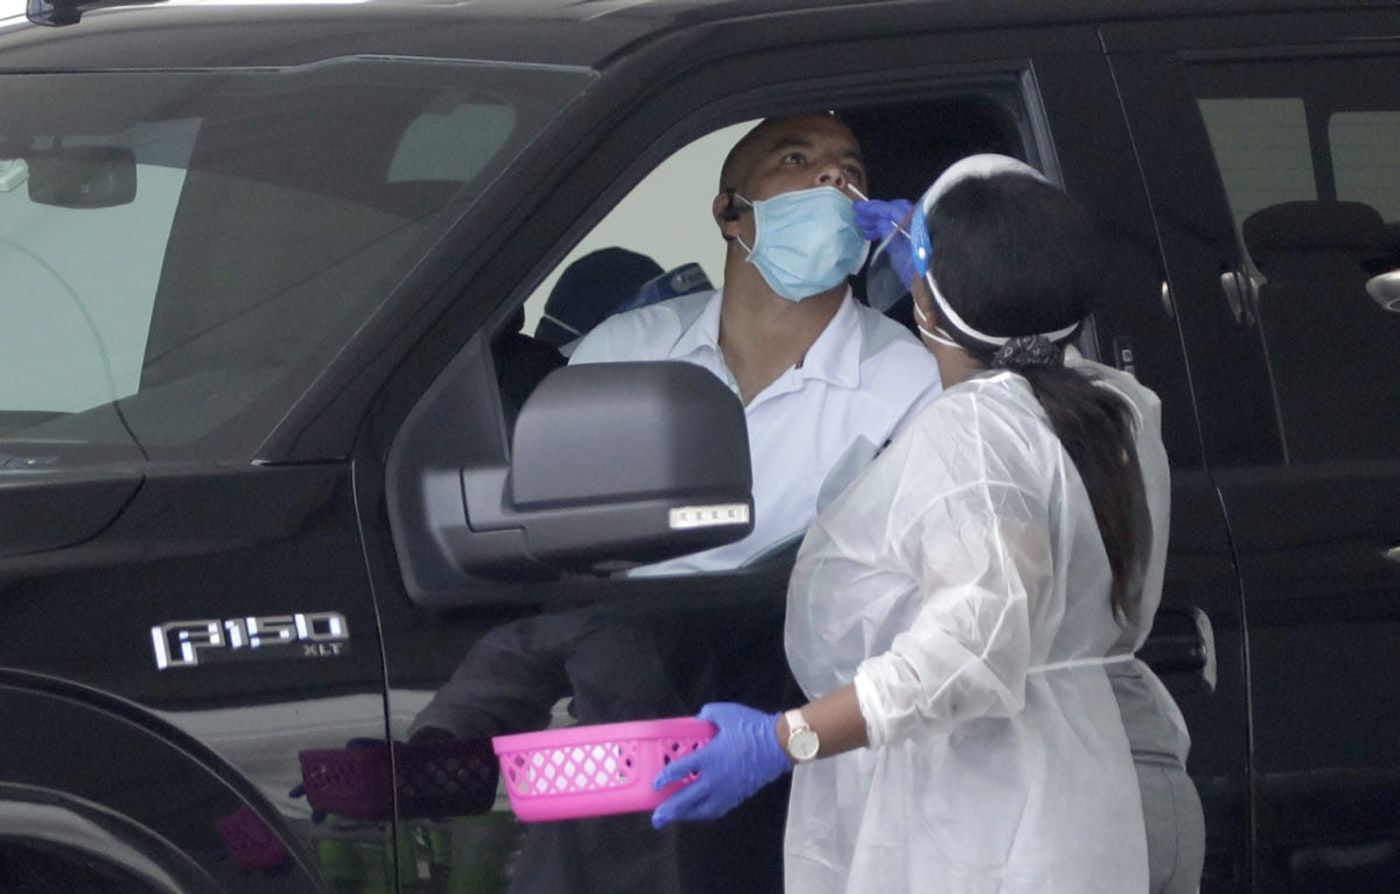 A healthcare worker performs an antigen test, Wednesday, Aug. 5, 2020, at a COVID-19 testing site outside Hard Rock Stadium in Miami Gardens, Fla. State officials say Florida has surpassed 500,000 coronavirus cases. (AP Photo/Wilfredo Lee)